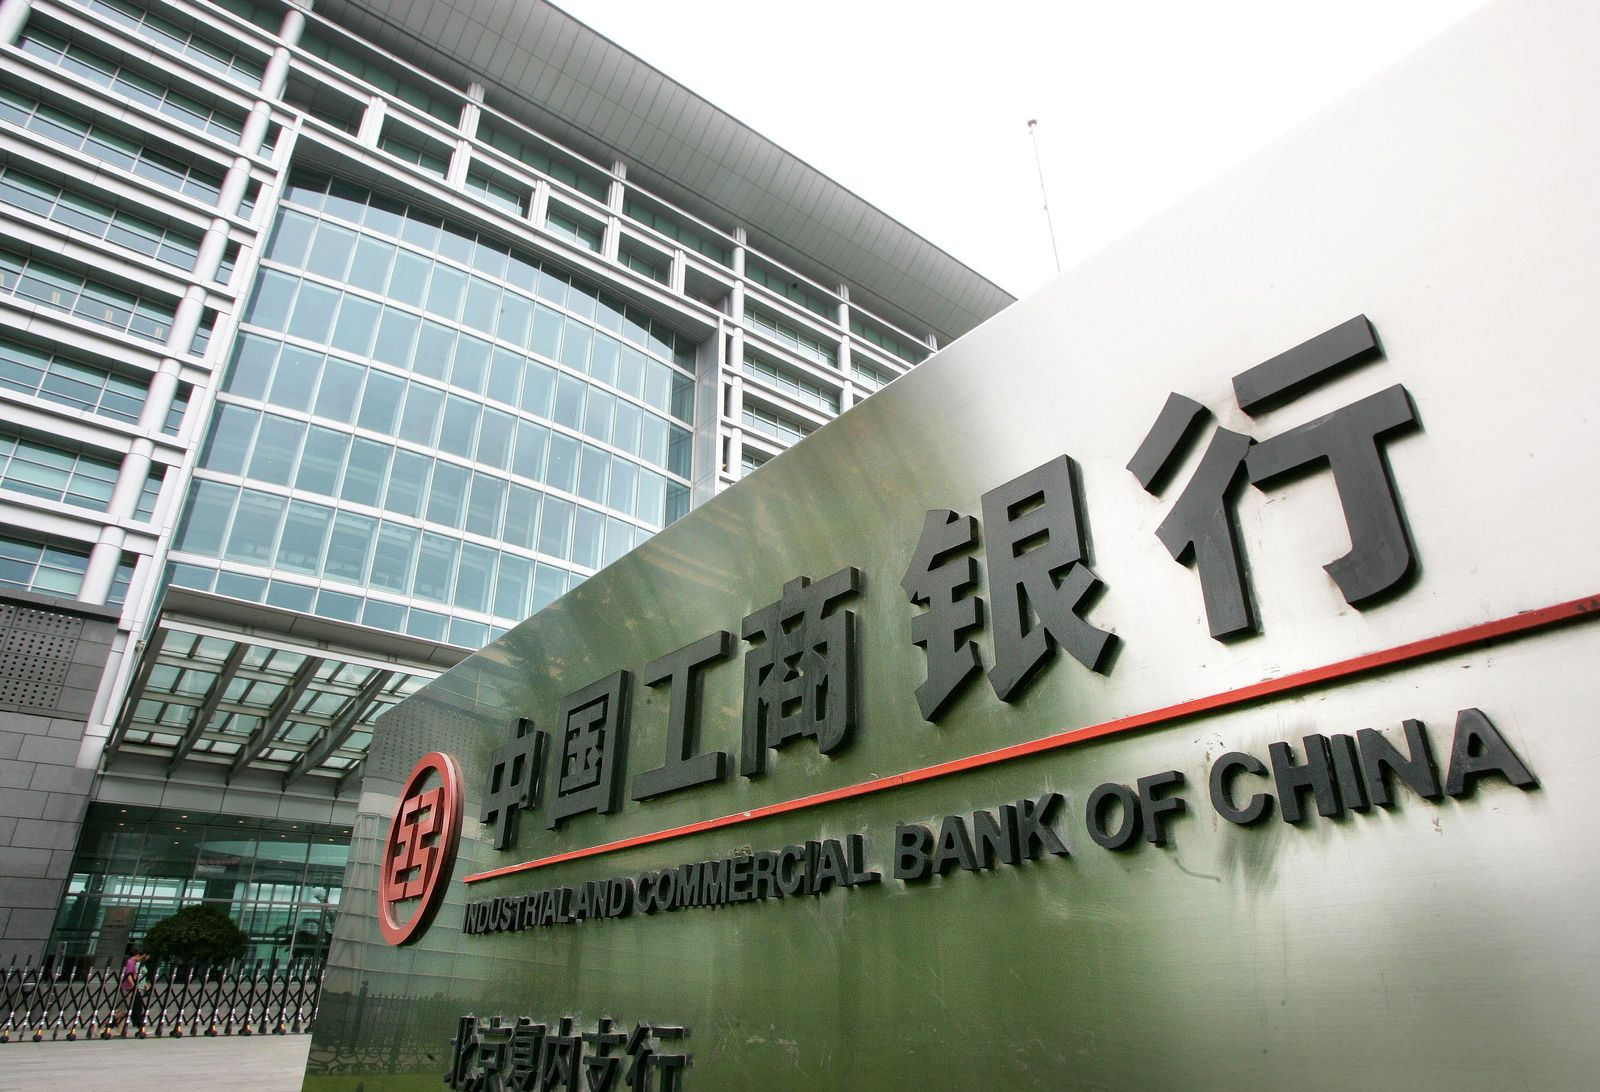 Industrial and Commercial Bank of China / ICBC